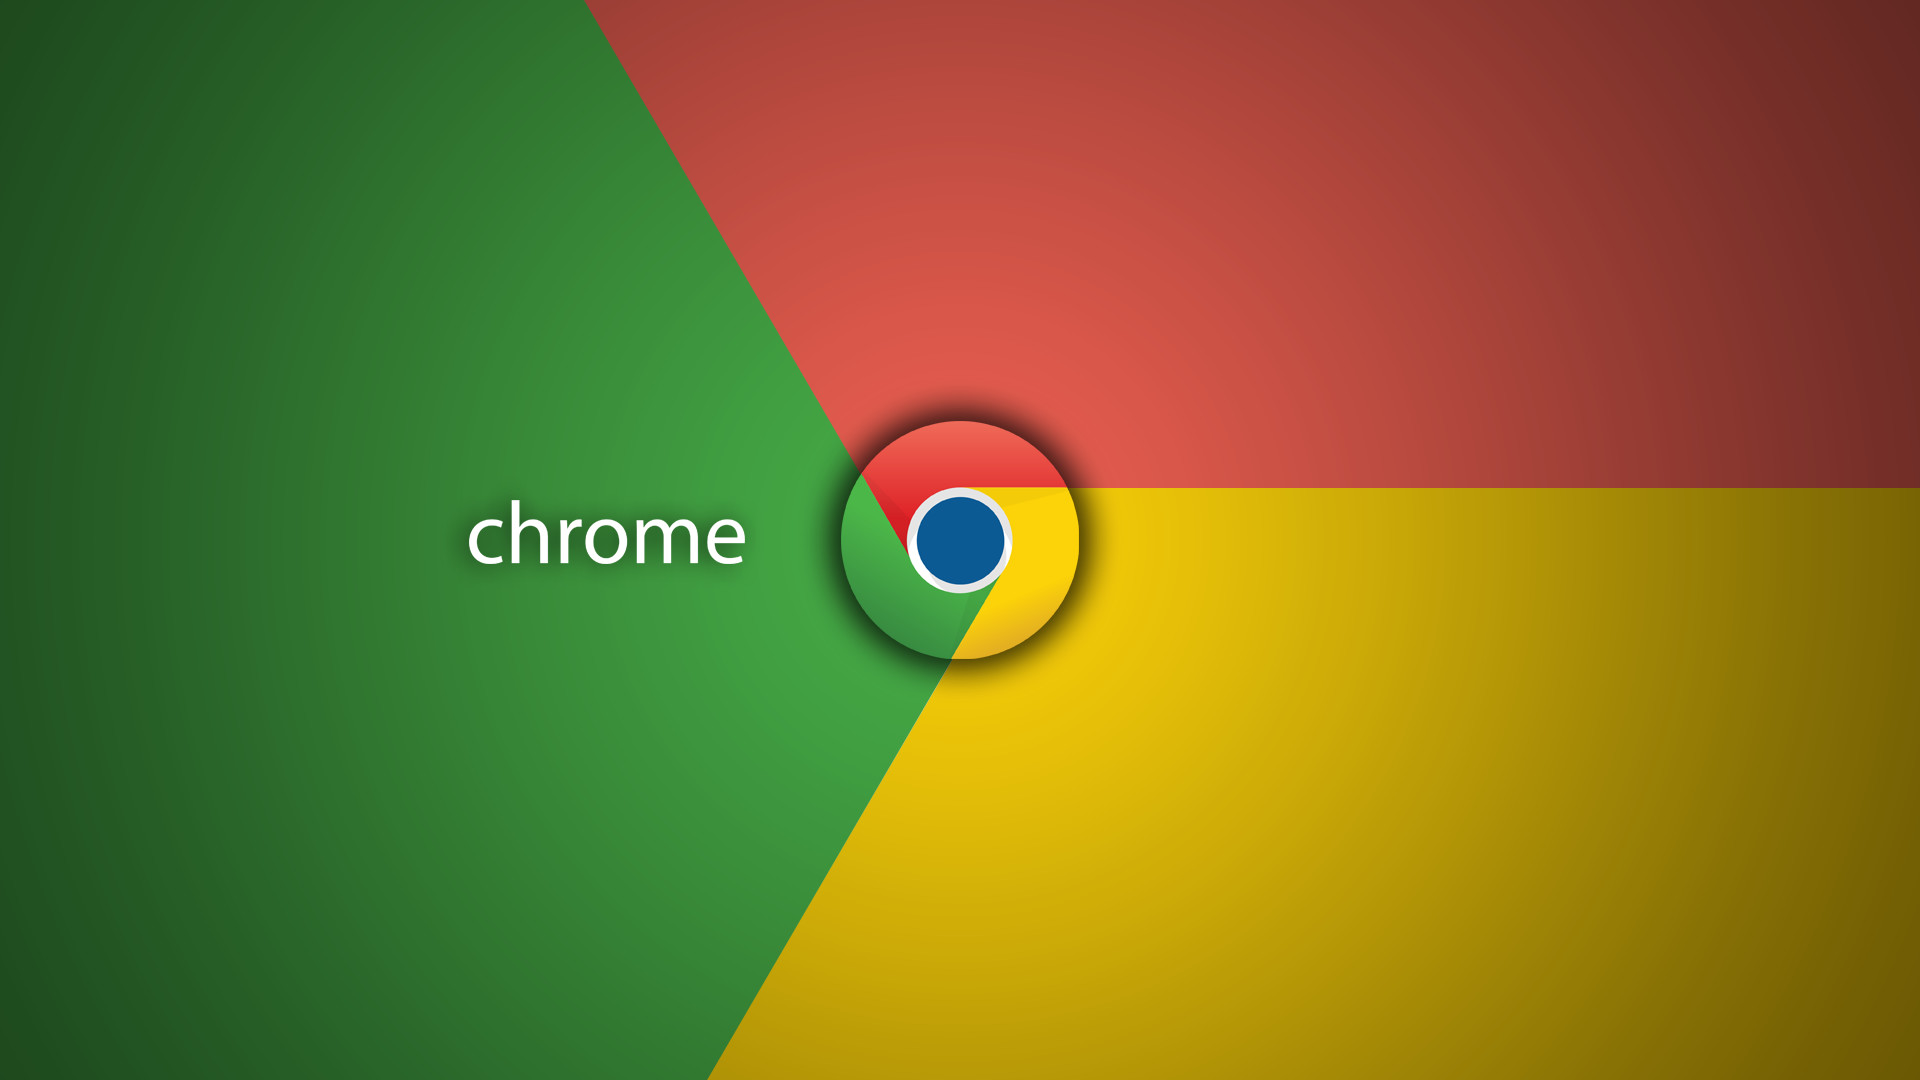 Google Chrome Wallpapers Wallpapers All Superior Google Chrome Wallpapers Backgrounds Wallpapersplanet Net